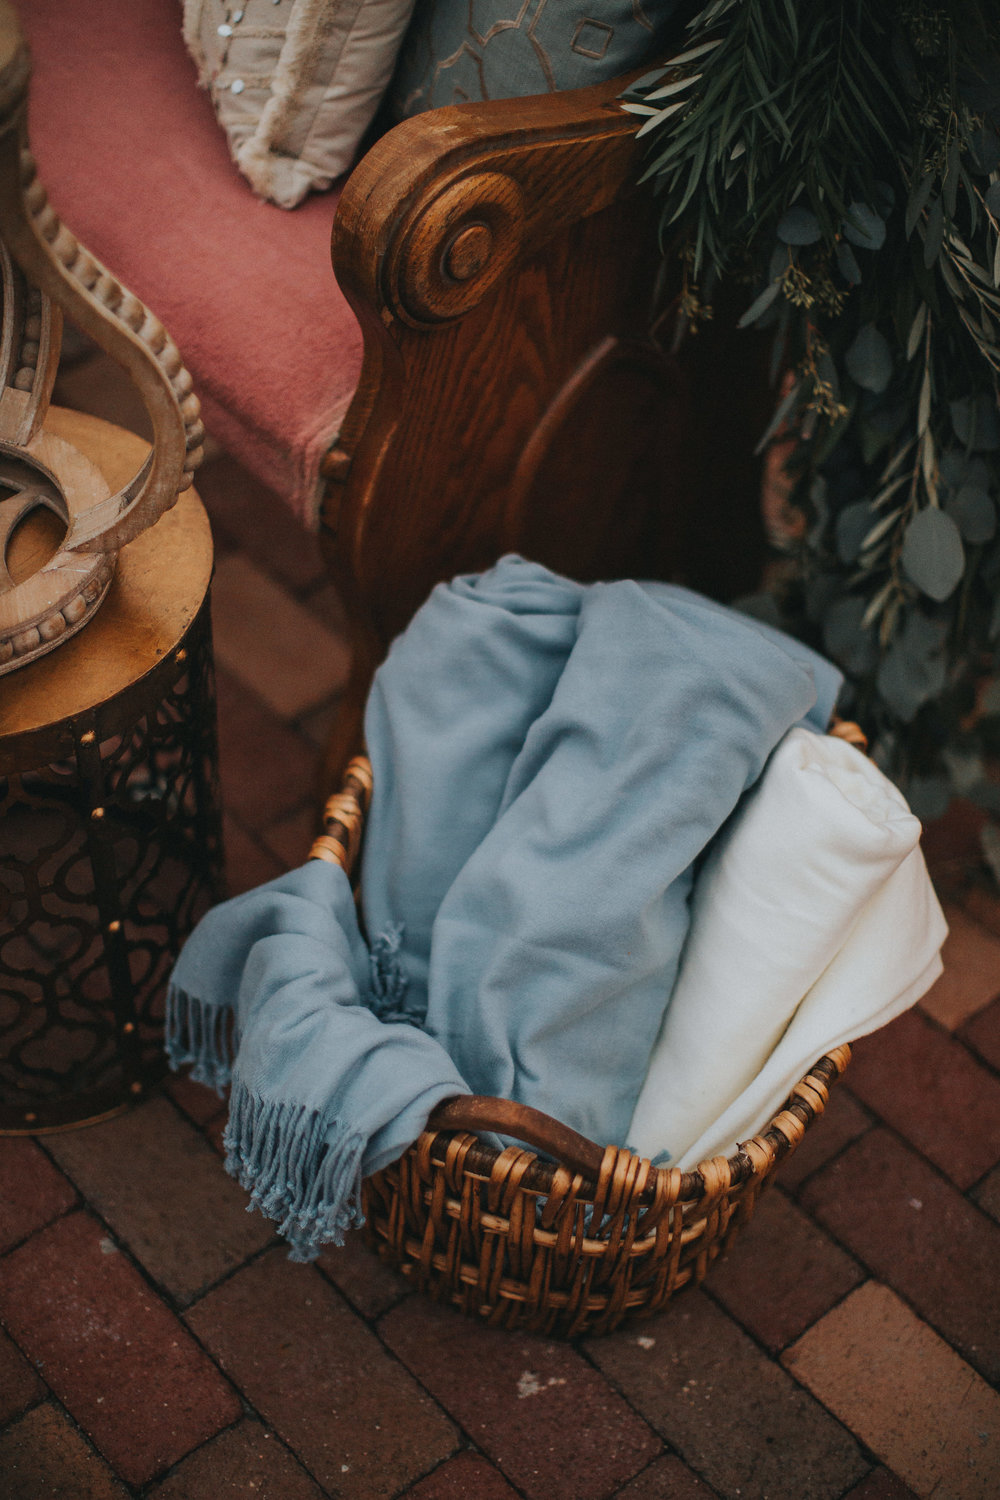 Pale blue throw blankets for the chilly December evening